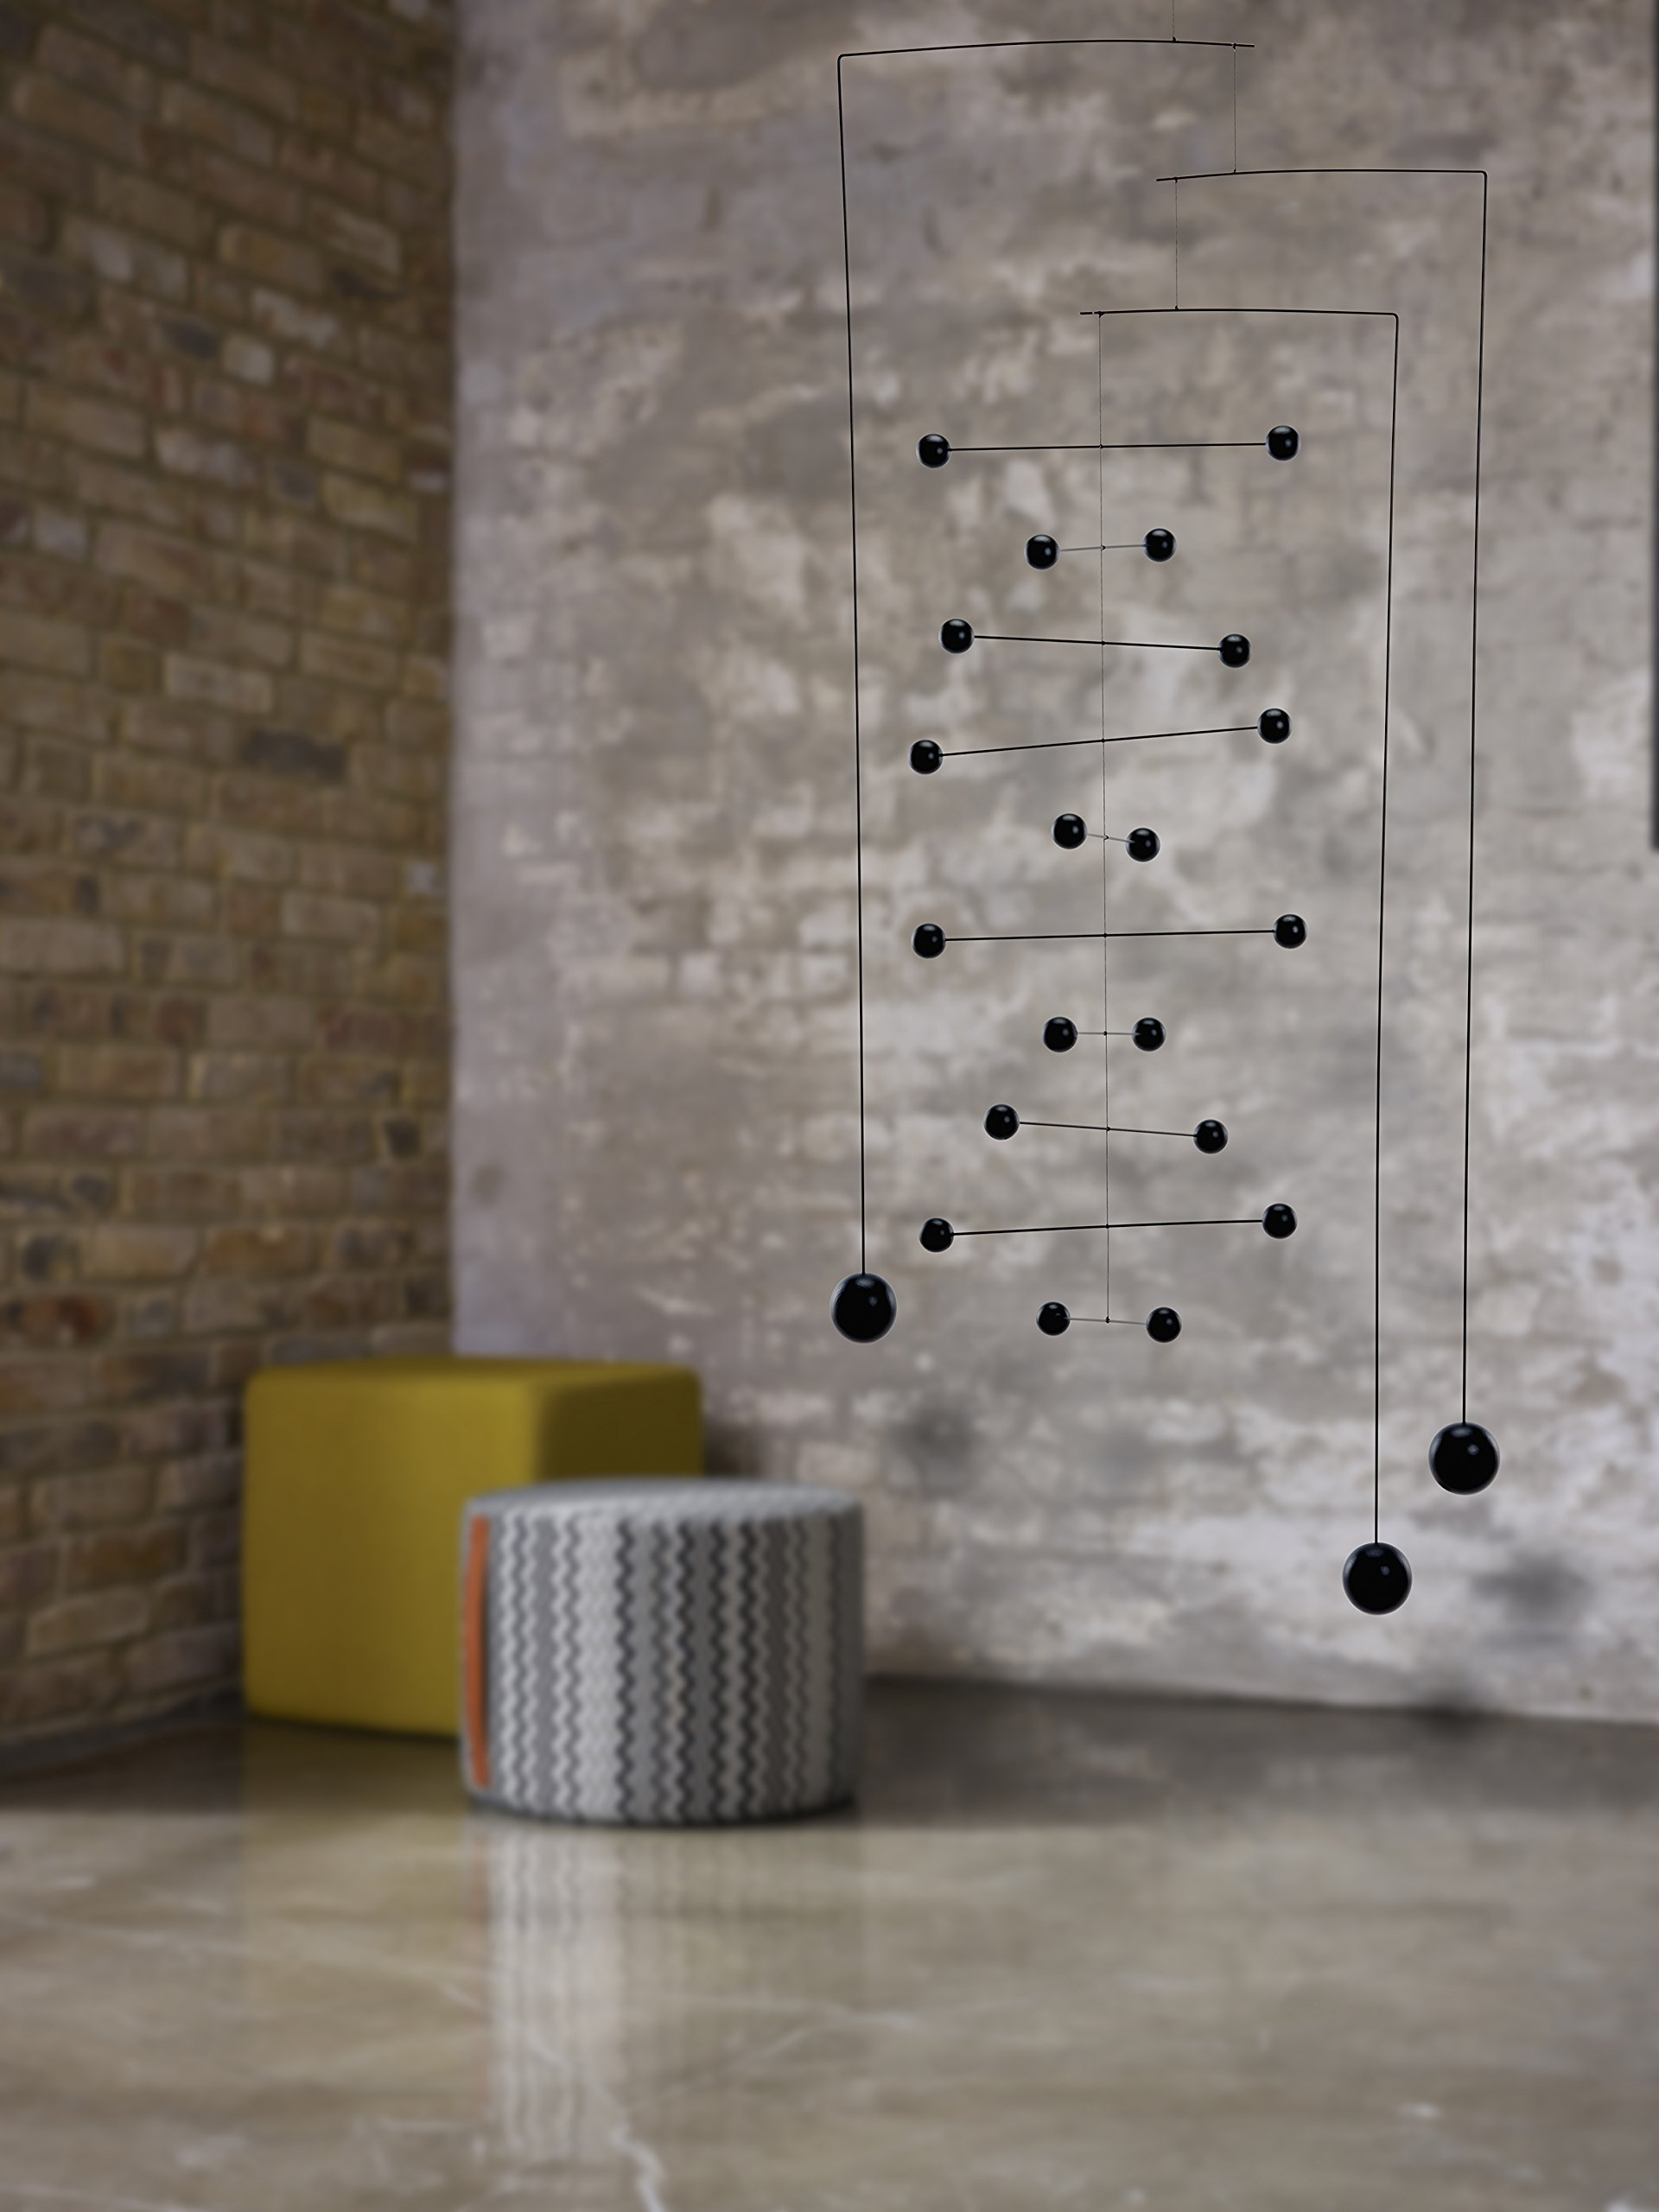 Counterpoint Large in Black Hanging Mobile - 44 Inches - Beech Wood and Steel - Handmade in Denmark by Flensted by Flensted Mobiles (Image #2)